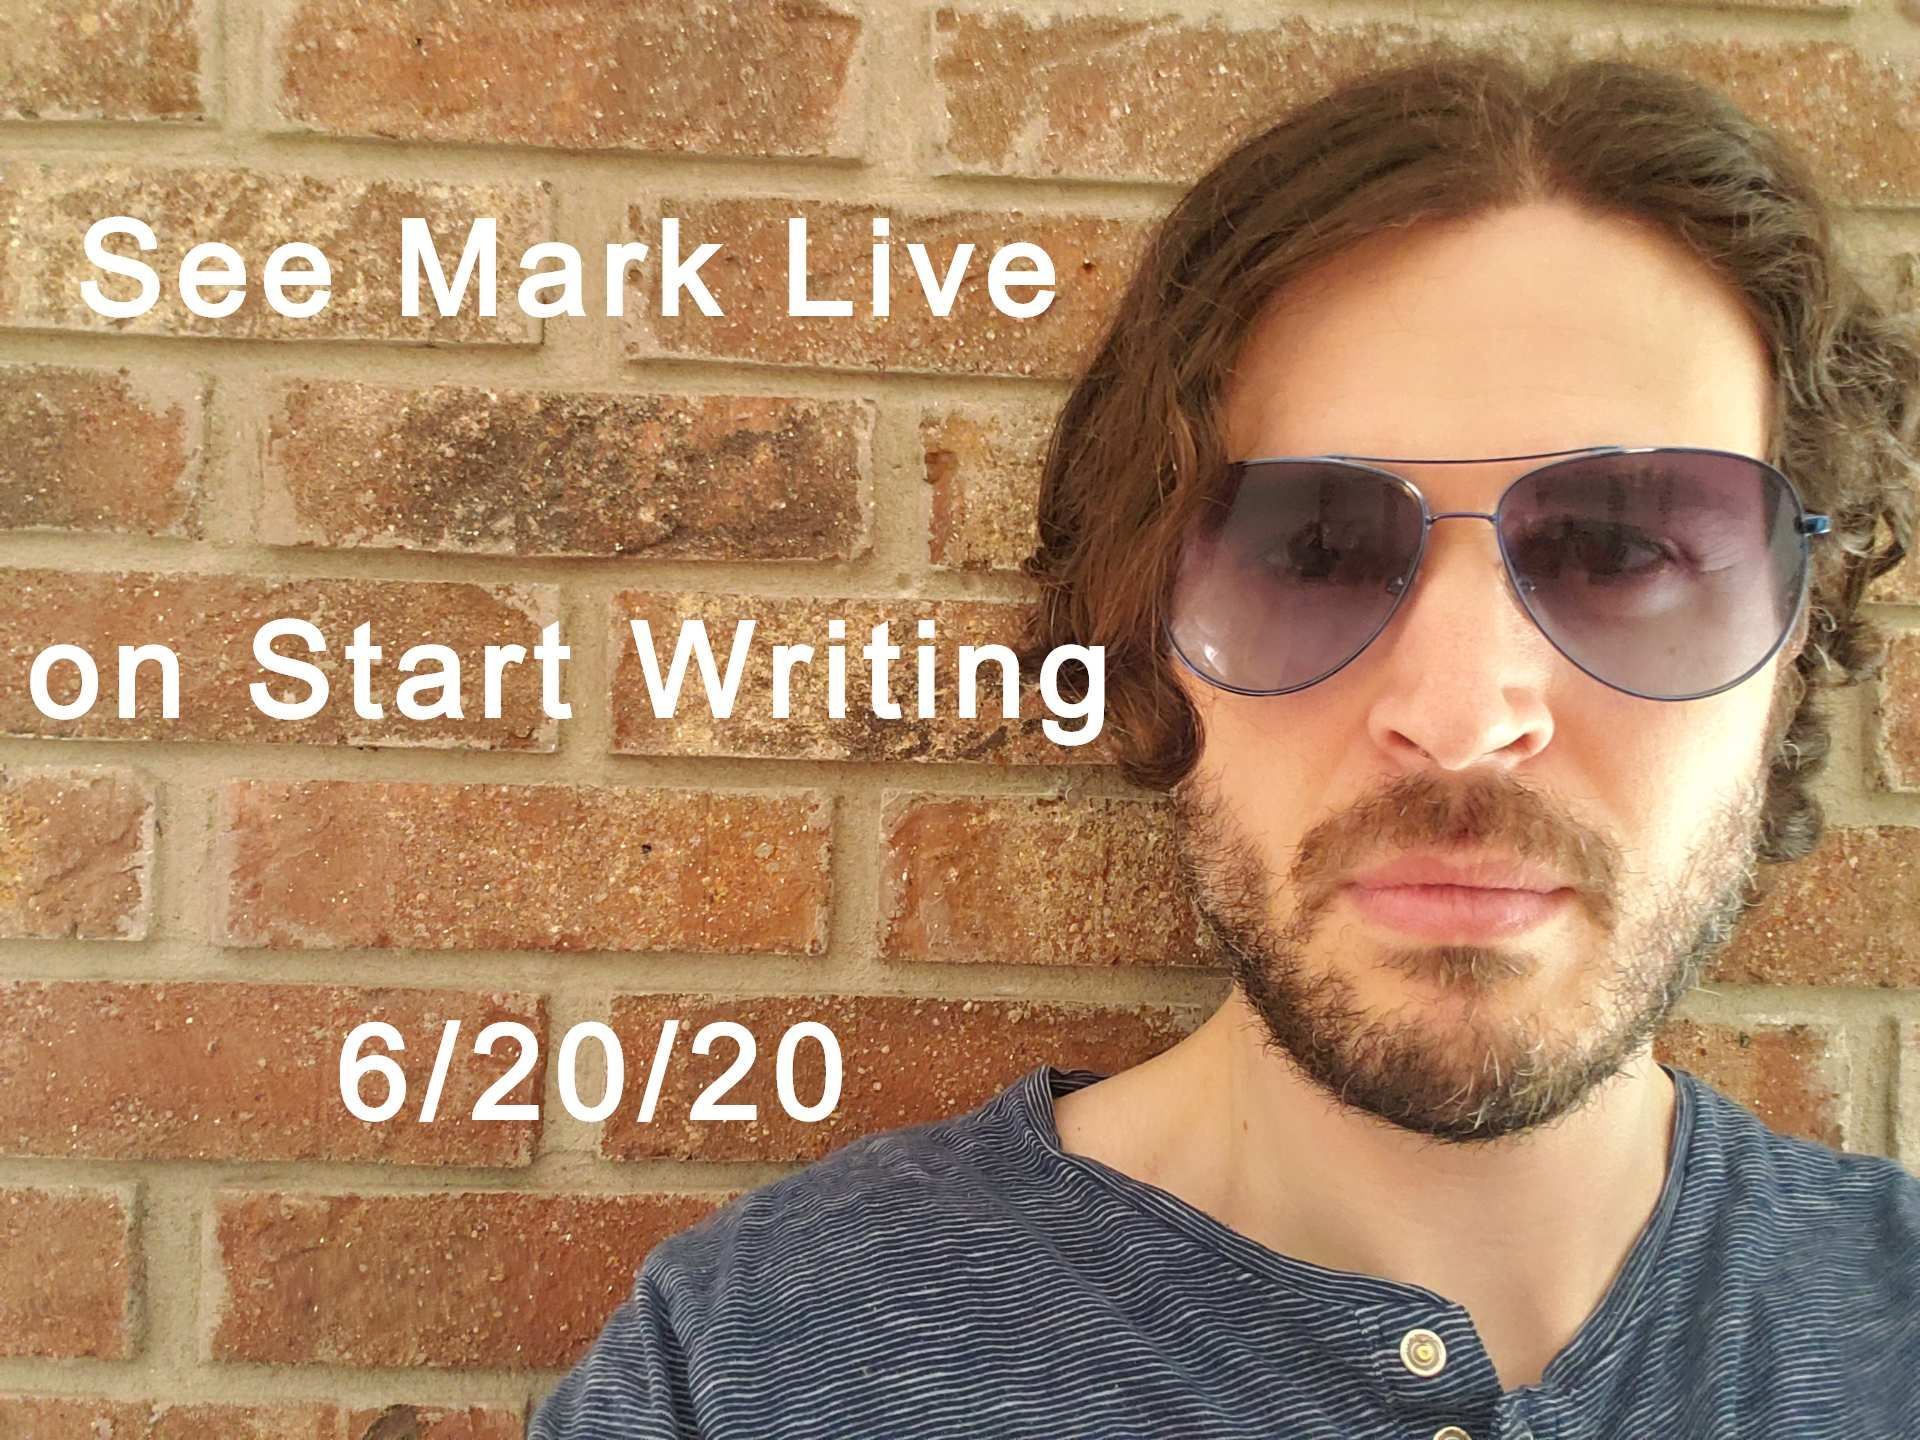 Mark Everglade cyberpunk author in blue shirt and glasses